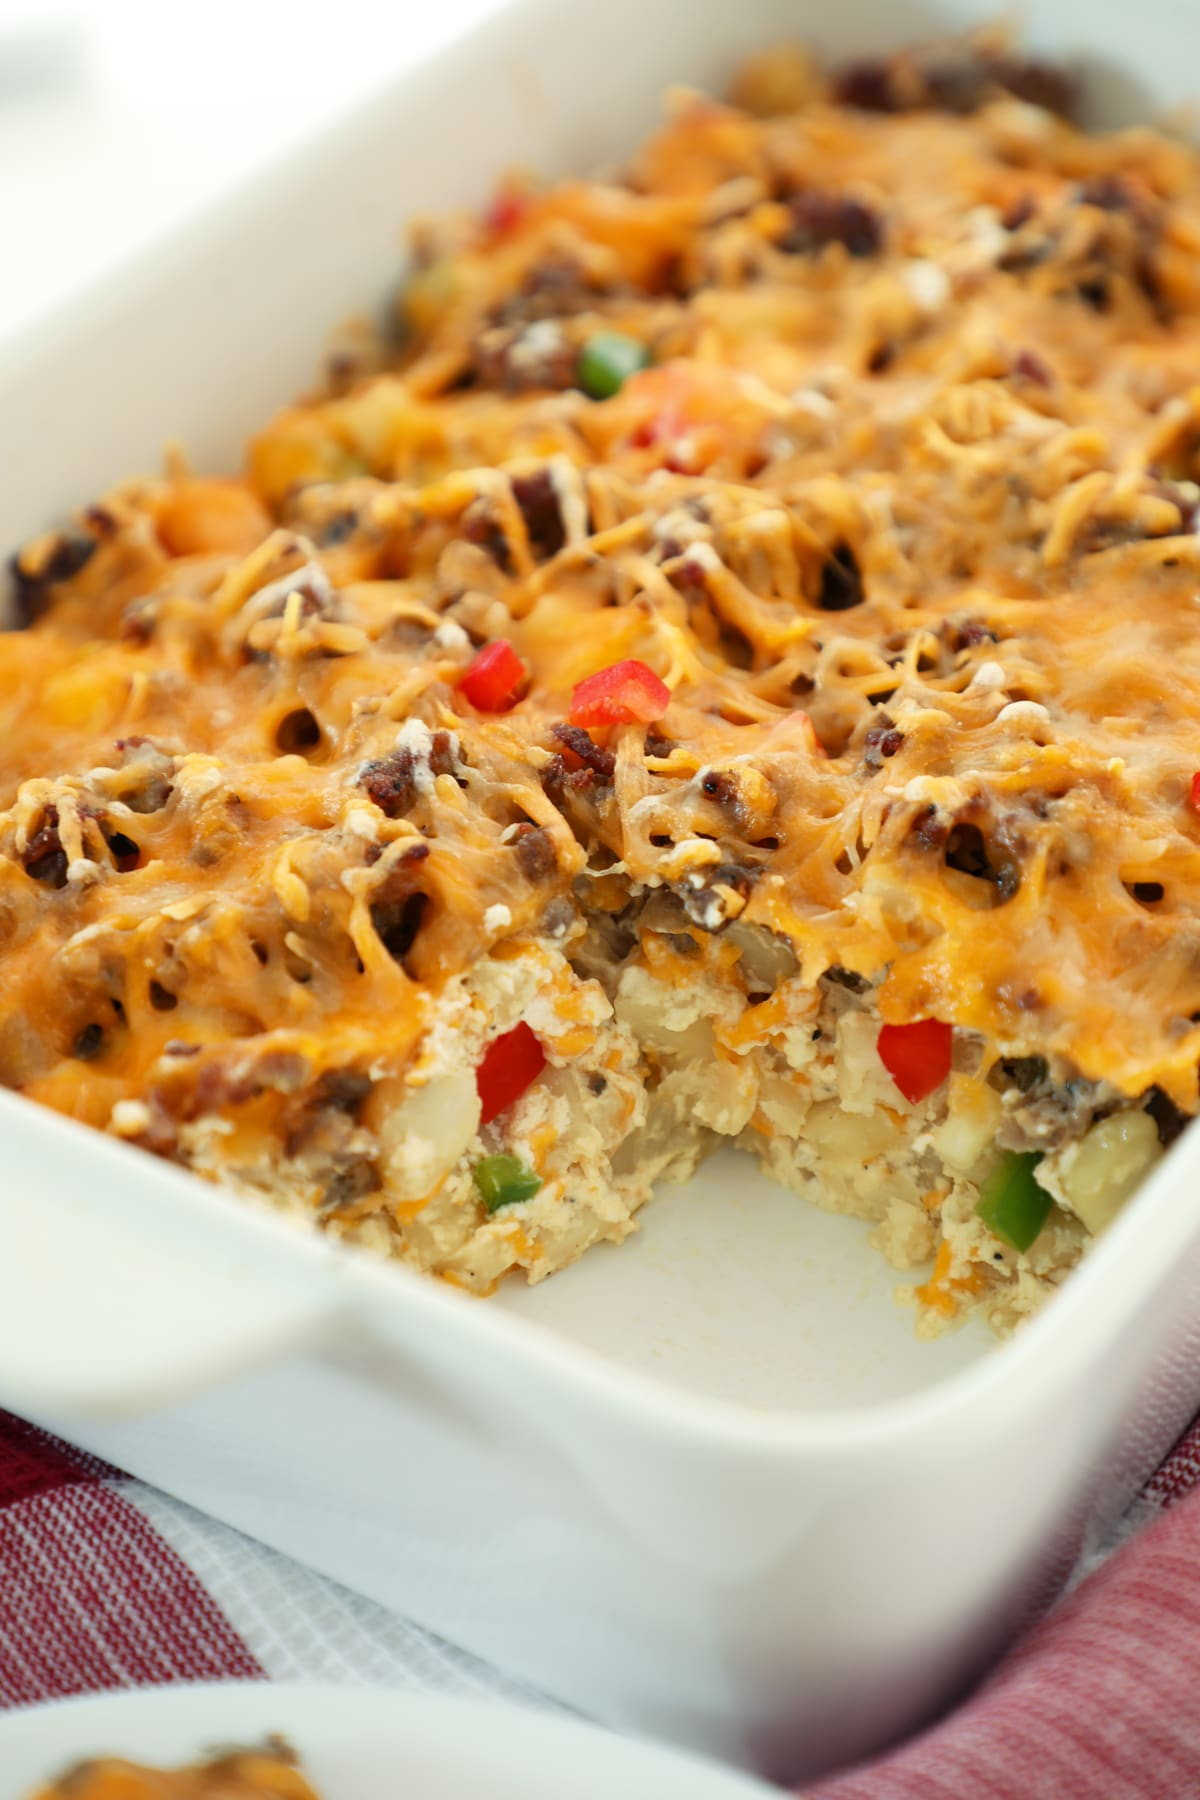 A delicious breakfast casserole without eggs. This sausage hashbrown breakfast casserole is a quick, easy, and delicious perfect breakfast for any holiday.